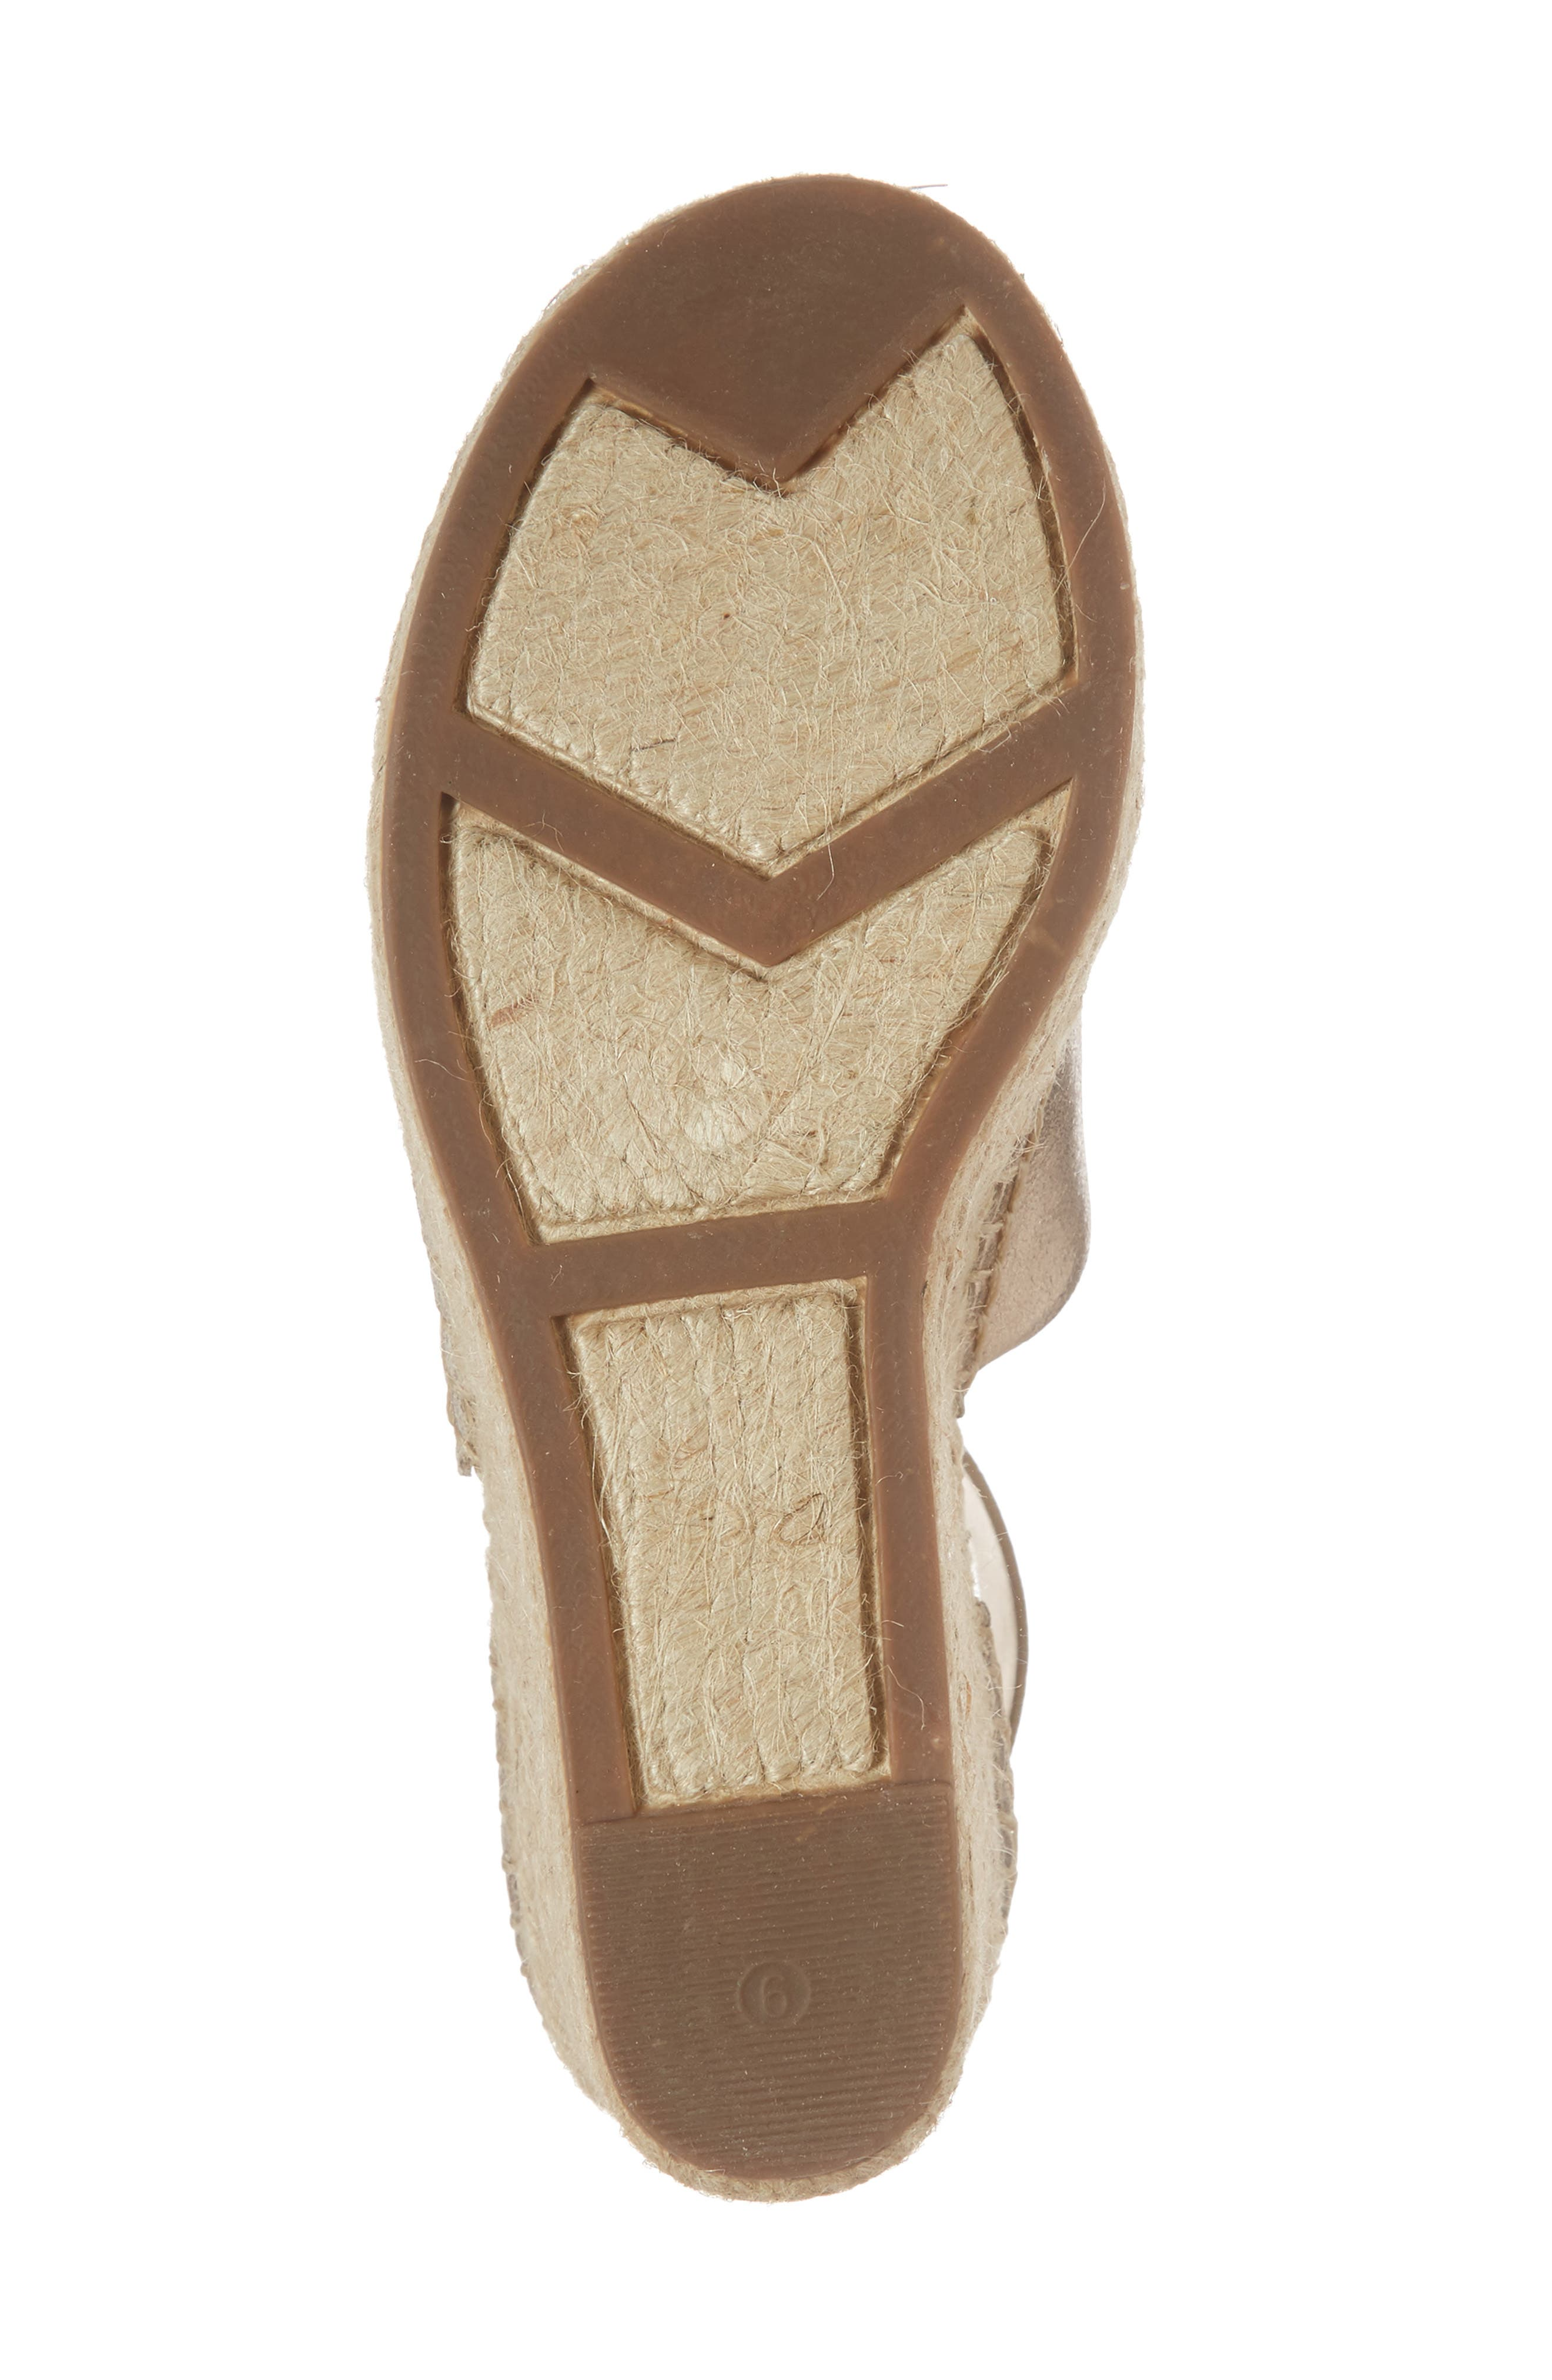 Adalyn Espadrille Wedge Sandal,                             Alternate thumbnail 6, color,                             Gold Leather